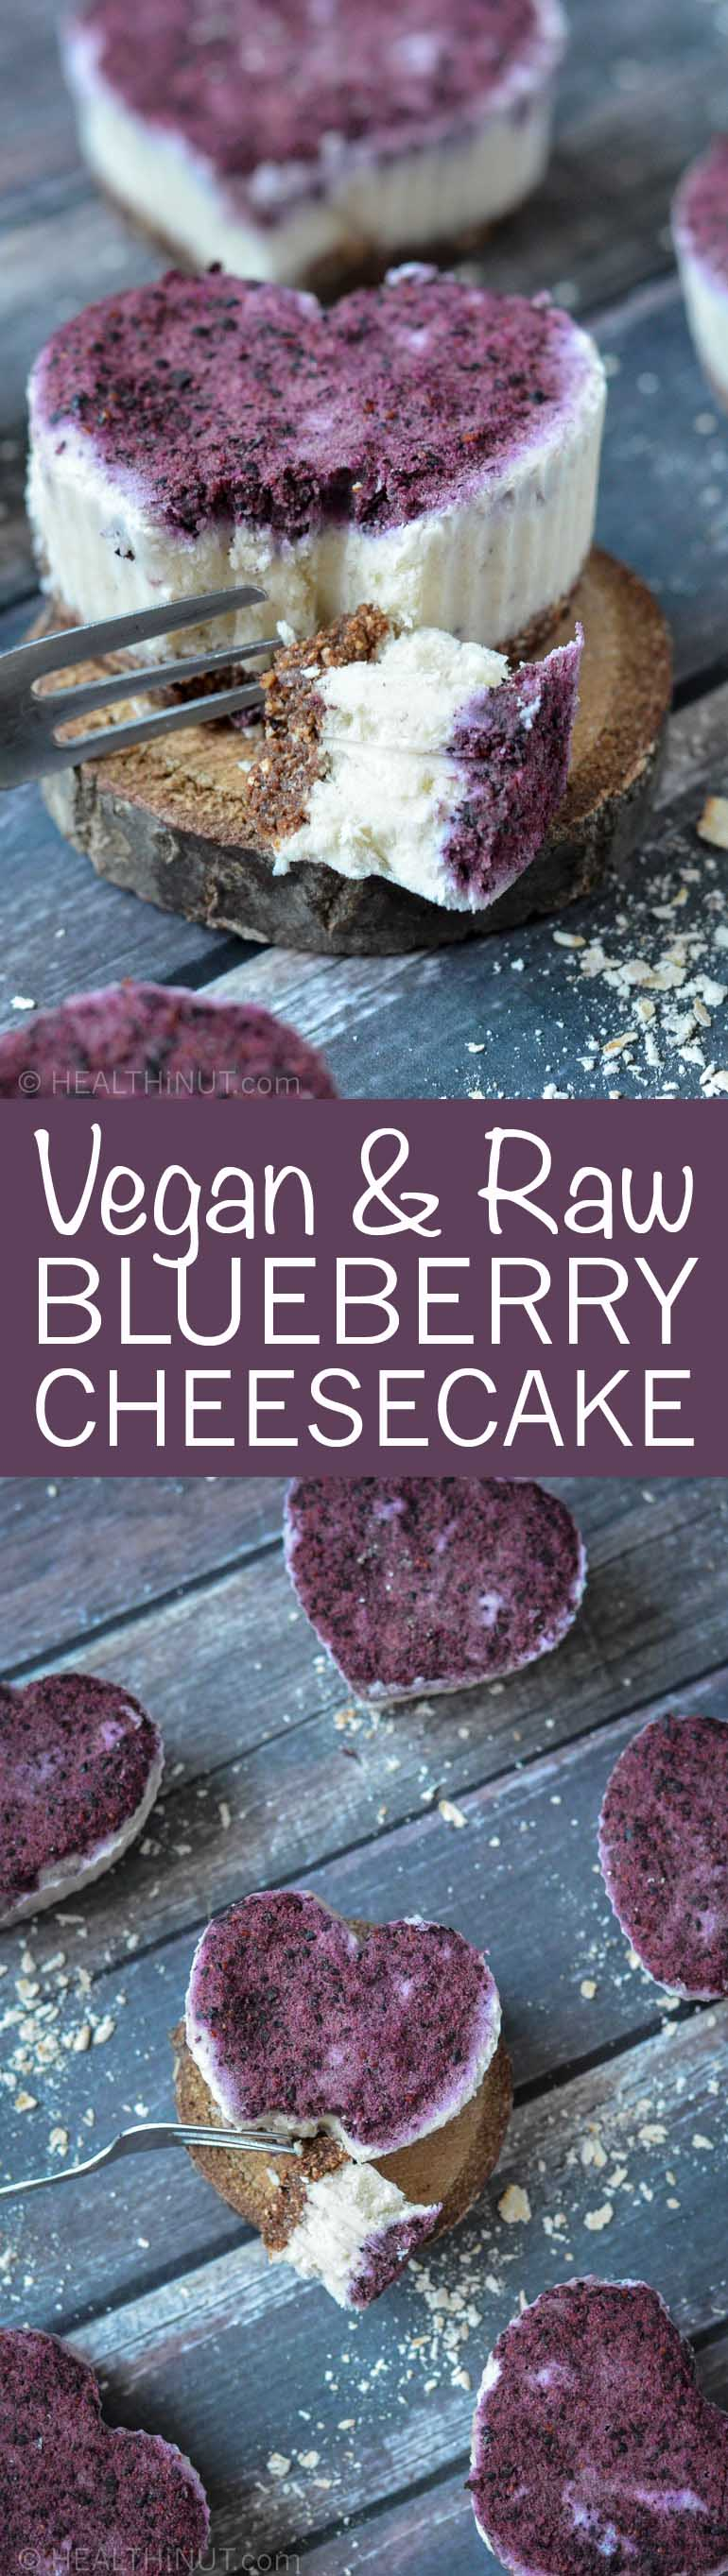 Delicious Vegan & Raw Mini Blueberry Cheesecakes!! Yum!!